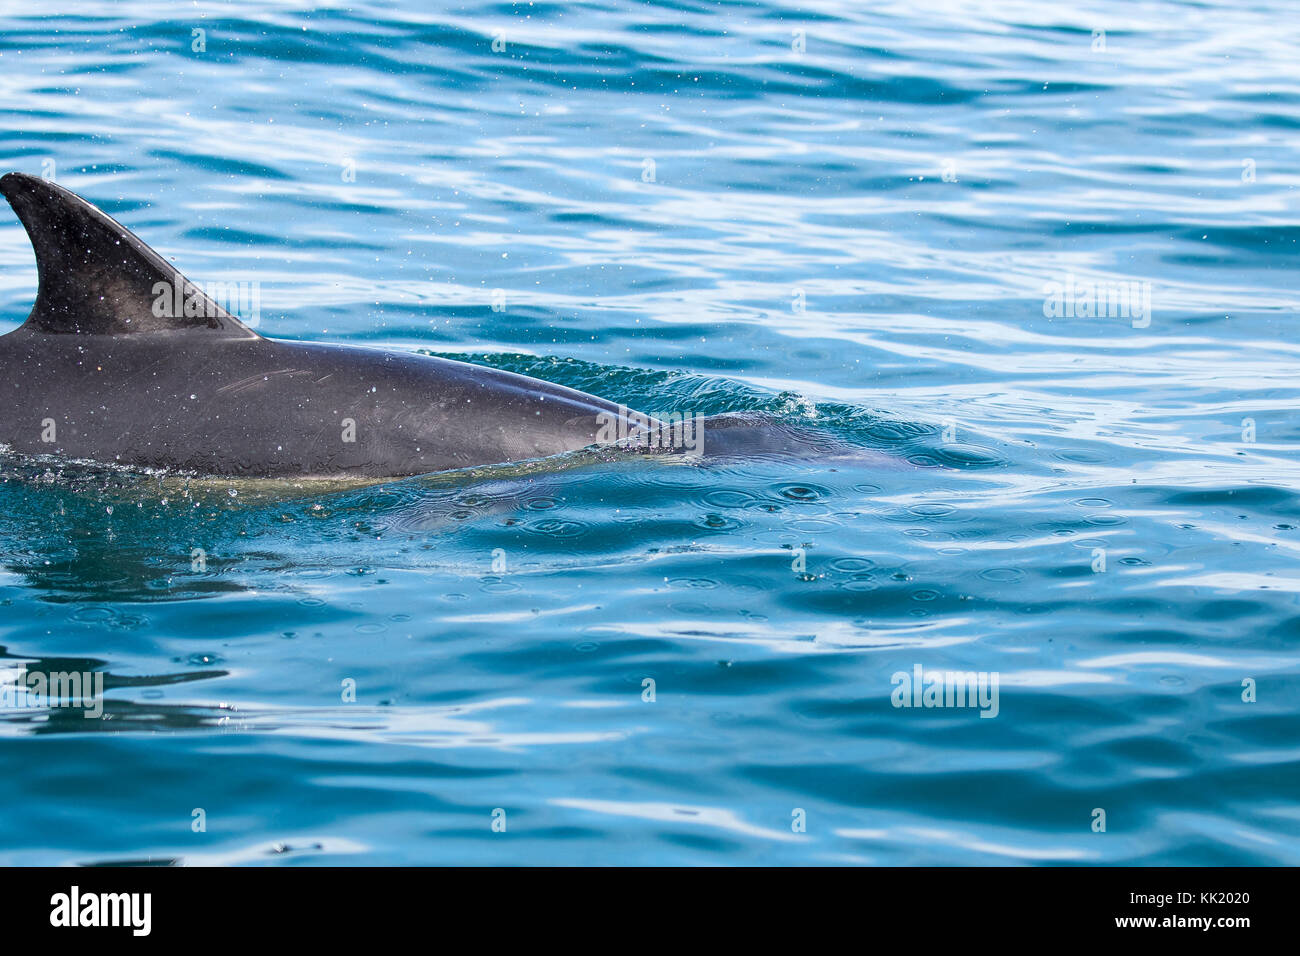 Common Dolphins (cetaceans) underwater sea, and breaking the water by jumping out of the Sea at Padstow, Cornwall - Stock Image